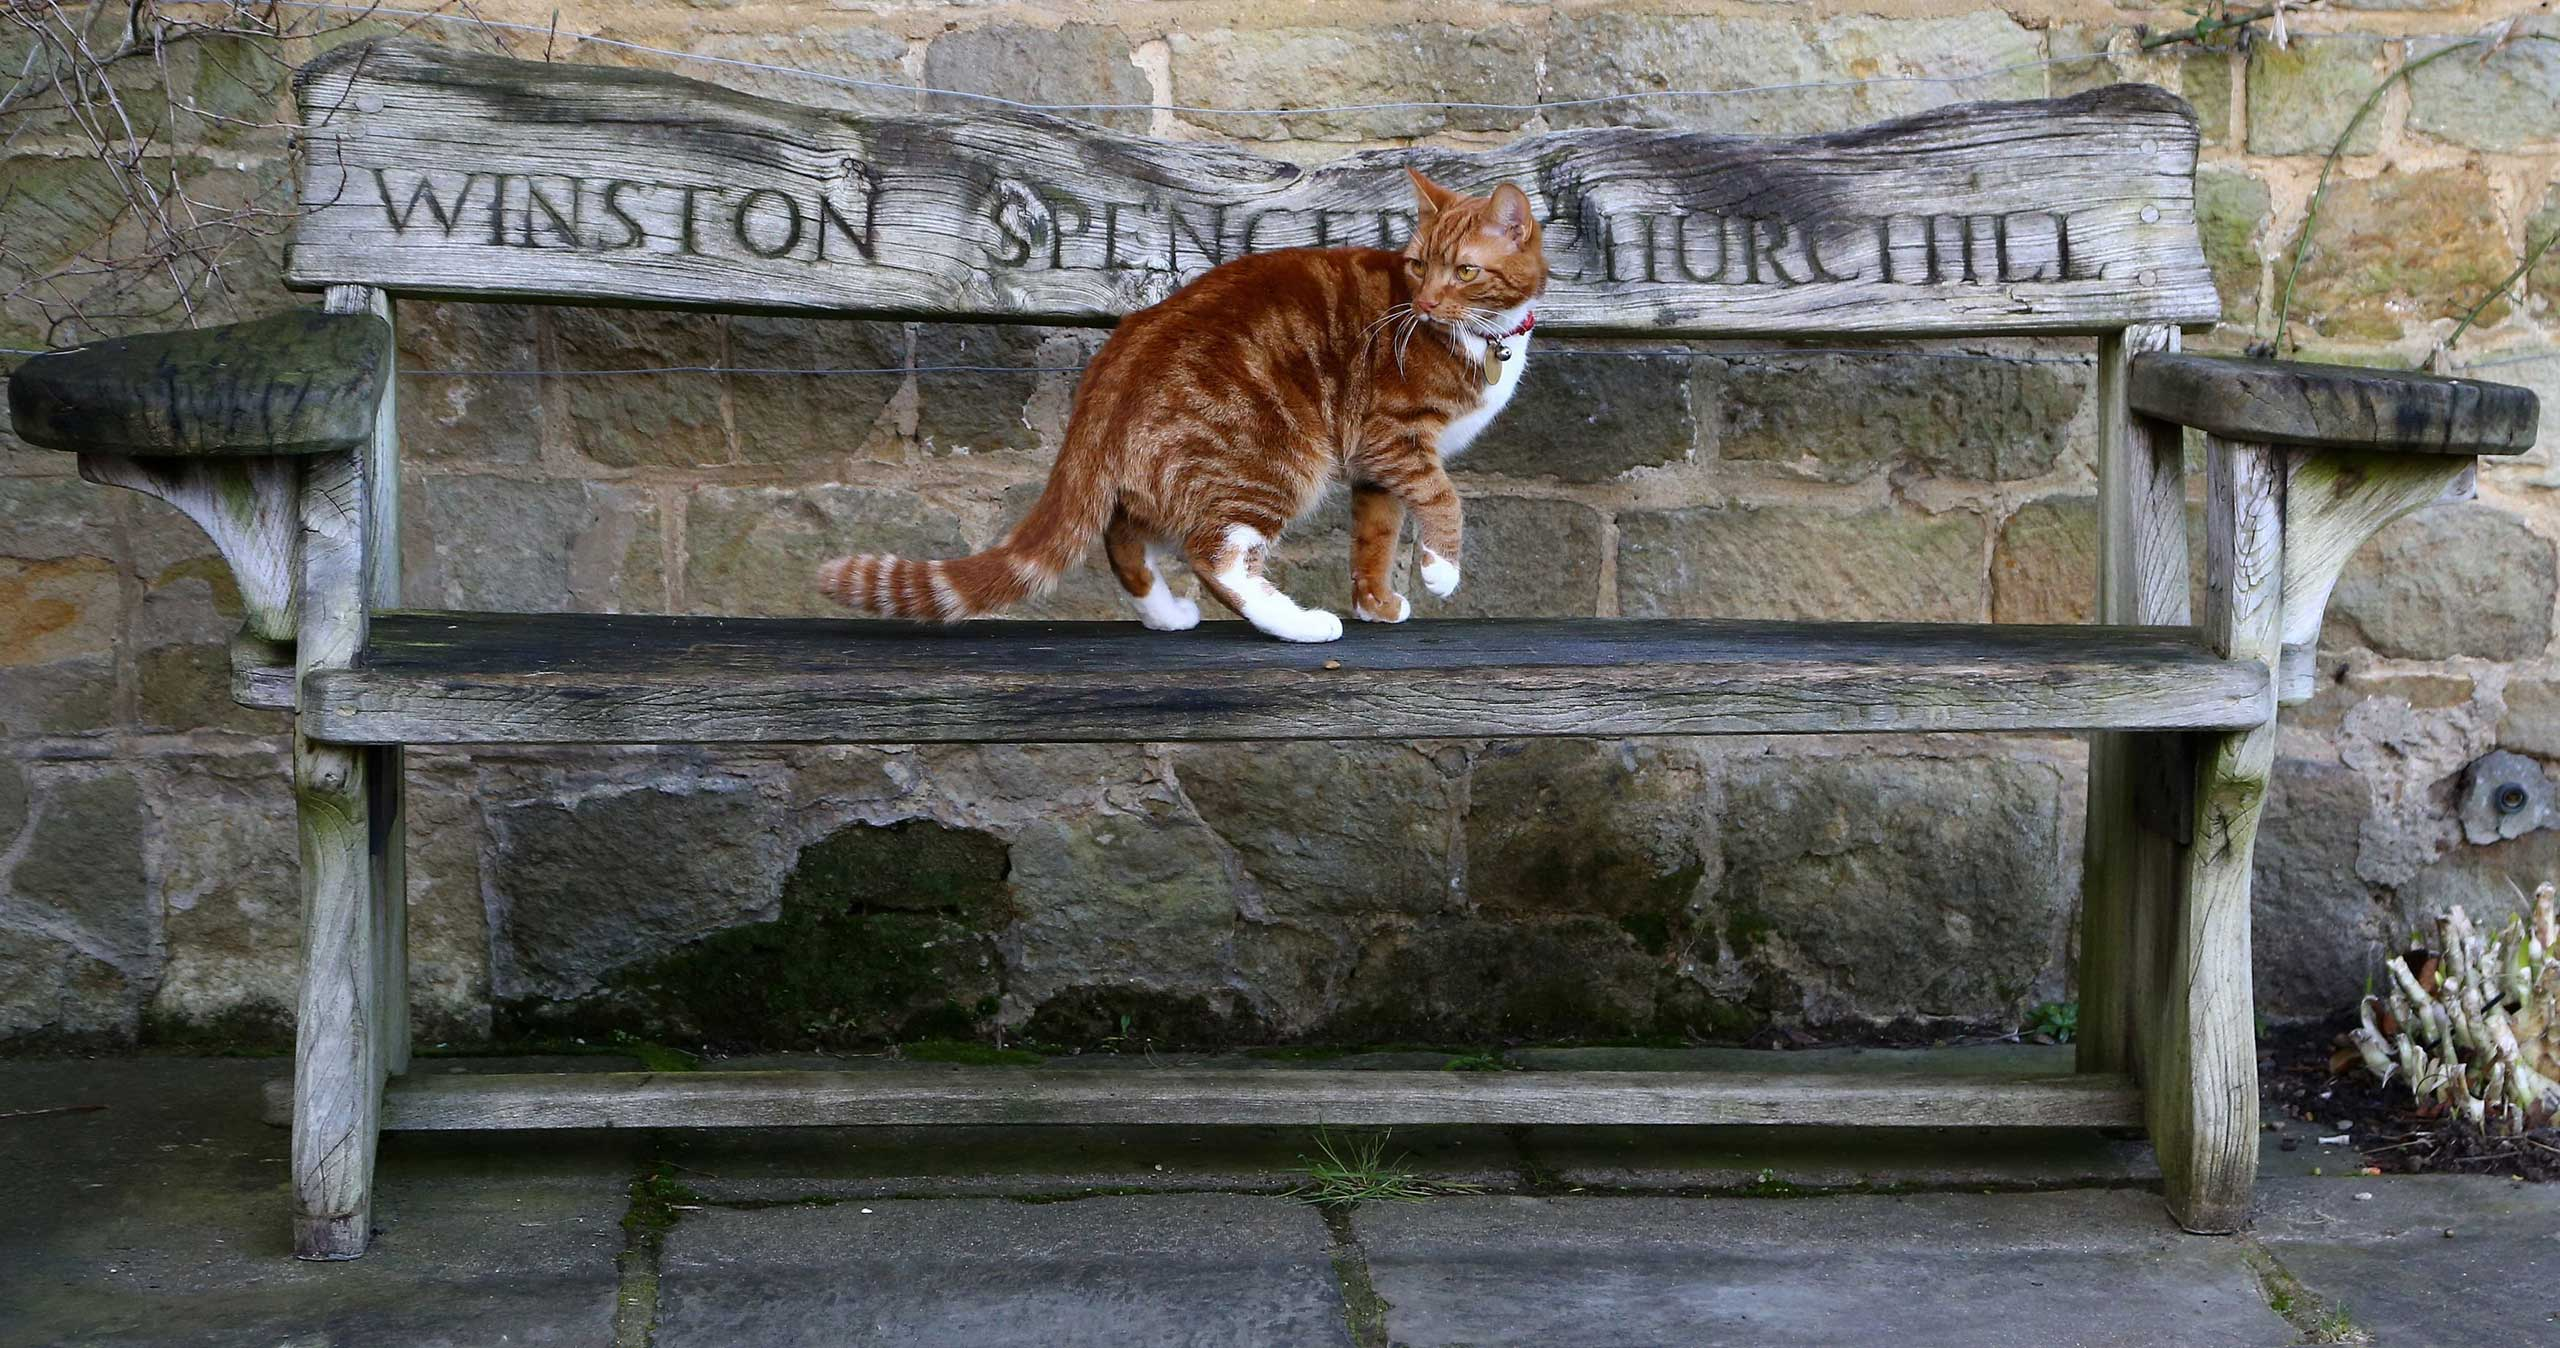 Jan. 25, 2015. Jock VI, the current cat in residence at Chartwell, is seen on a memorial bench during a preview of Death of a Hero  exhibition at Winston Churchill's family home.